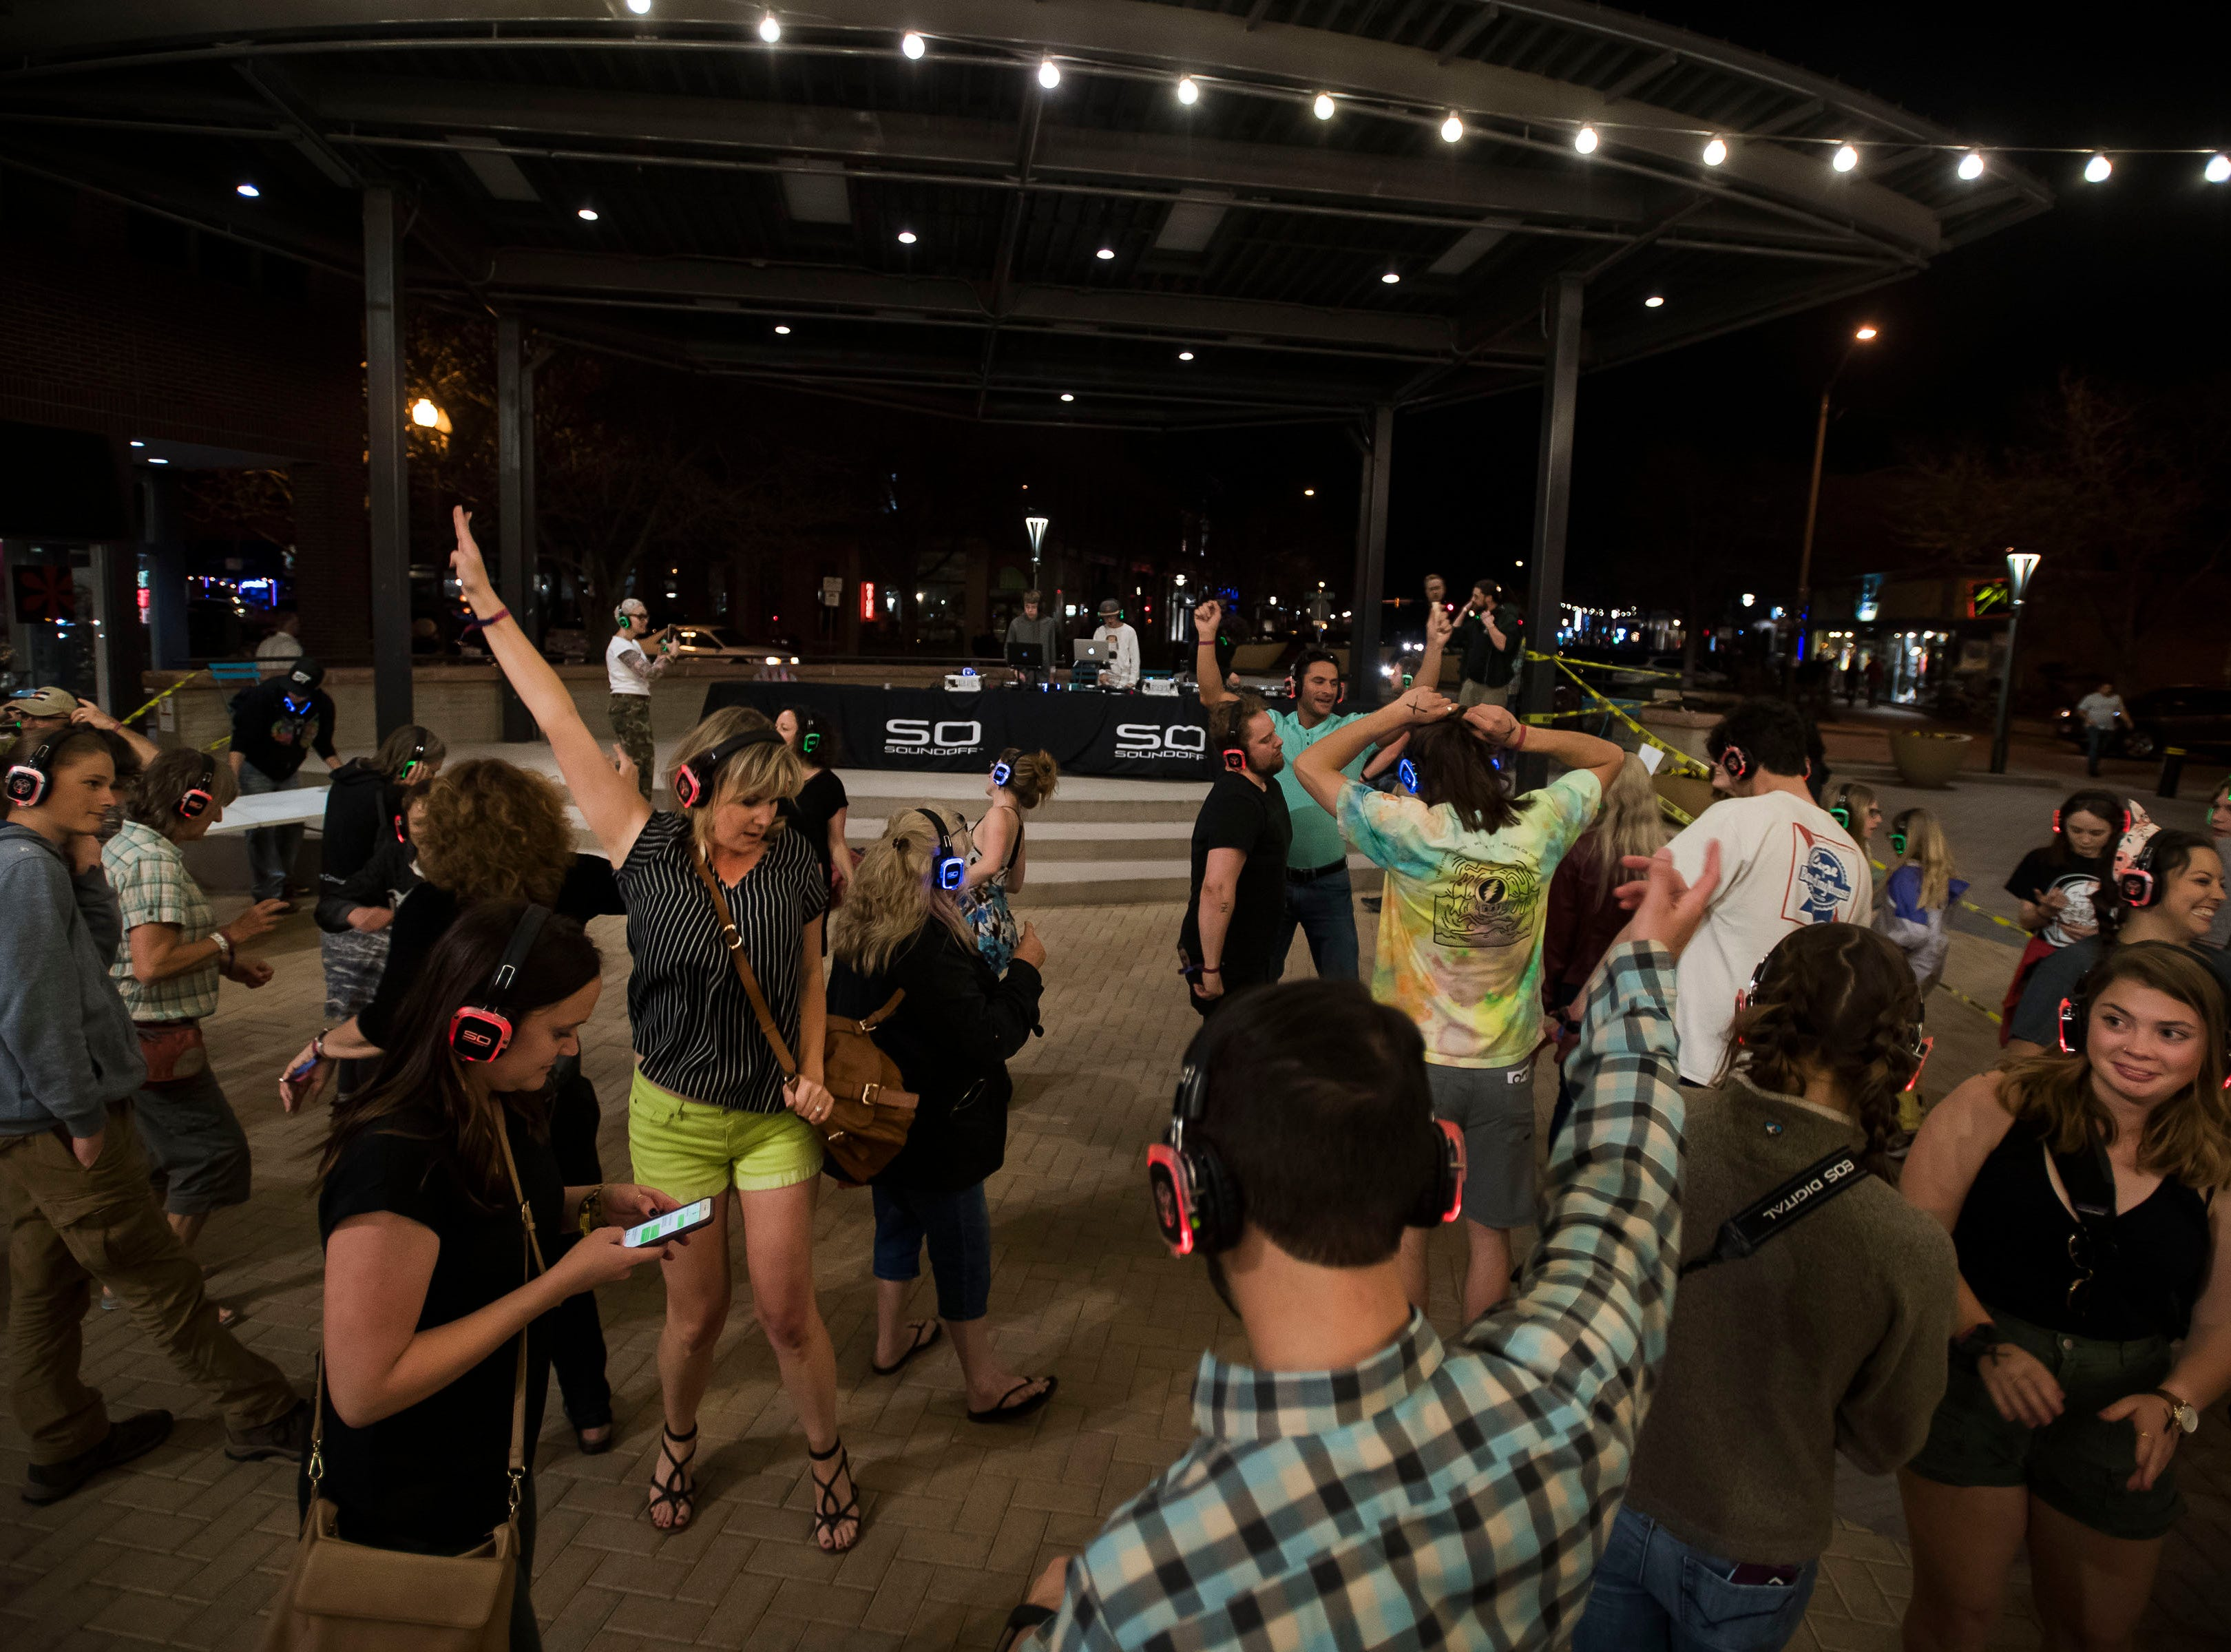 Audience members dance at the Sound Off Silent Disco at Old Town Square during the FoCoMX XI music festival on Friday, April 26, 2019, in Fort Collins, Colo.